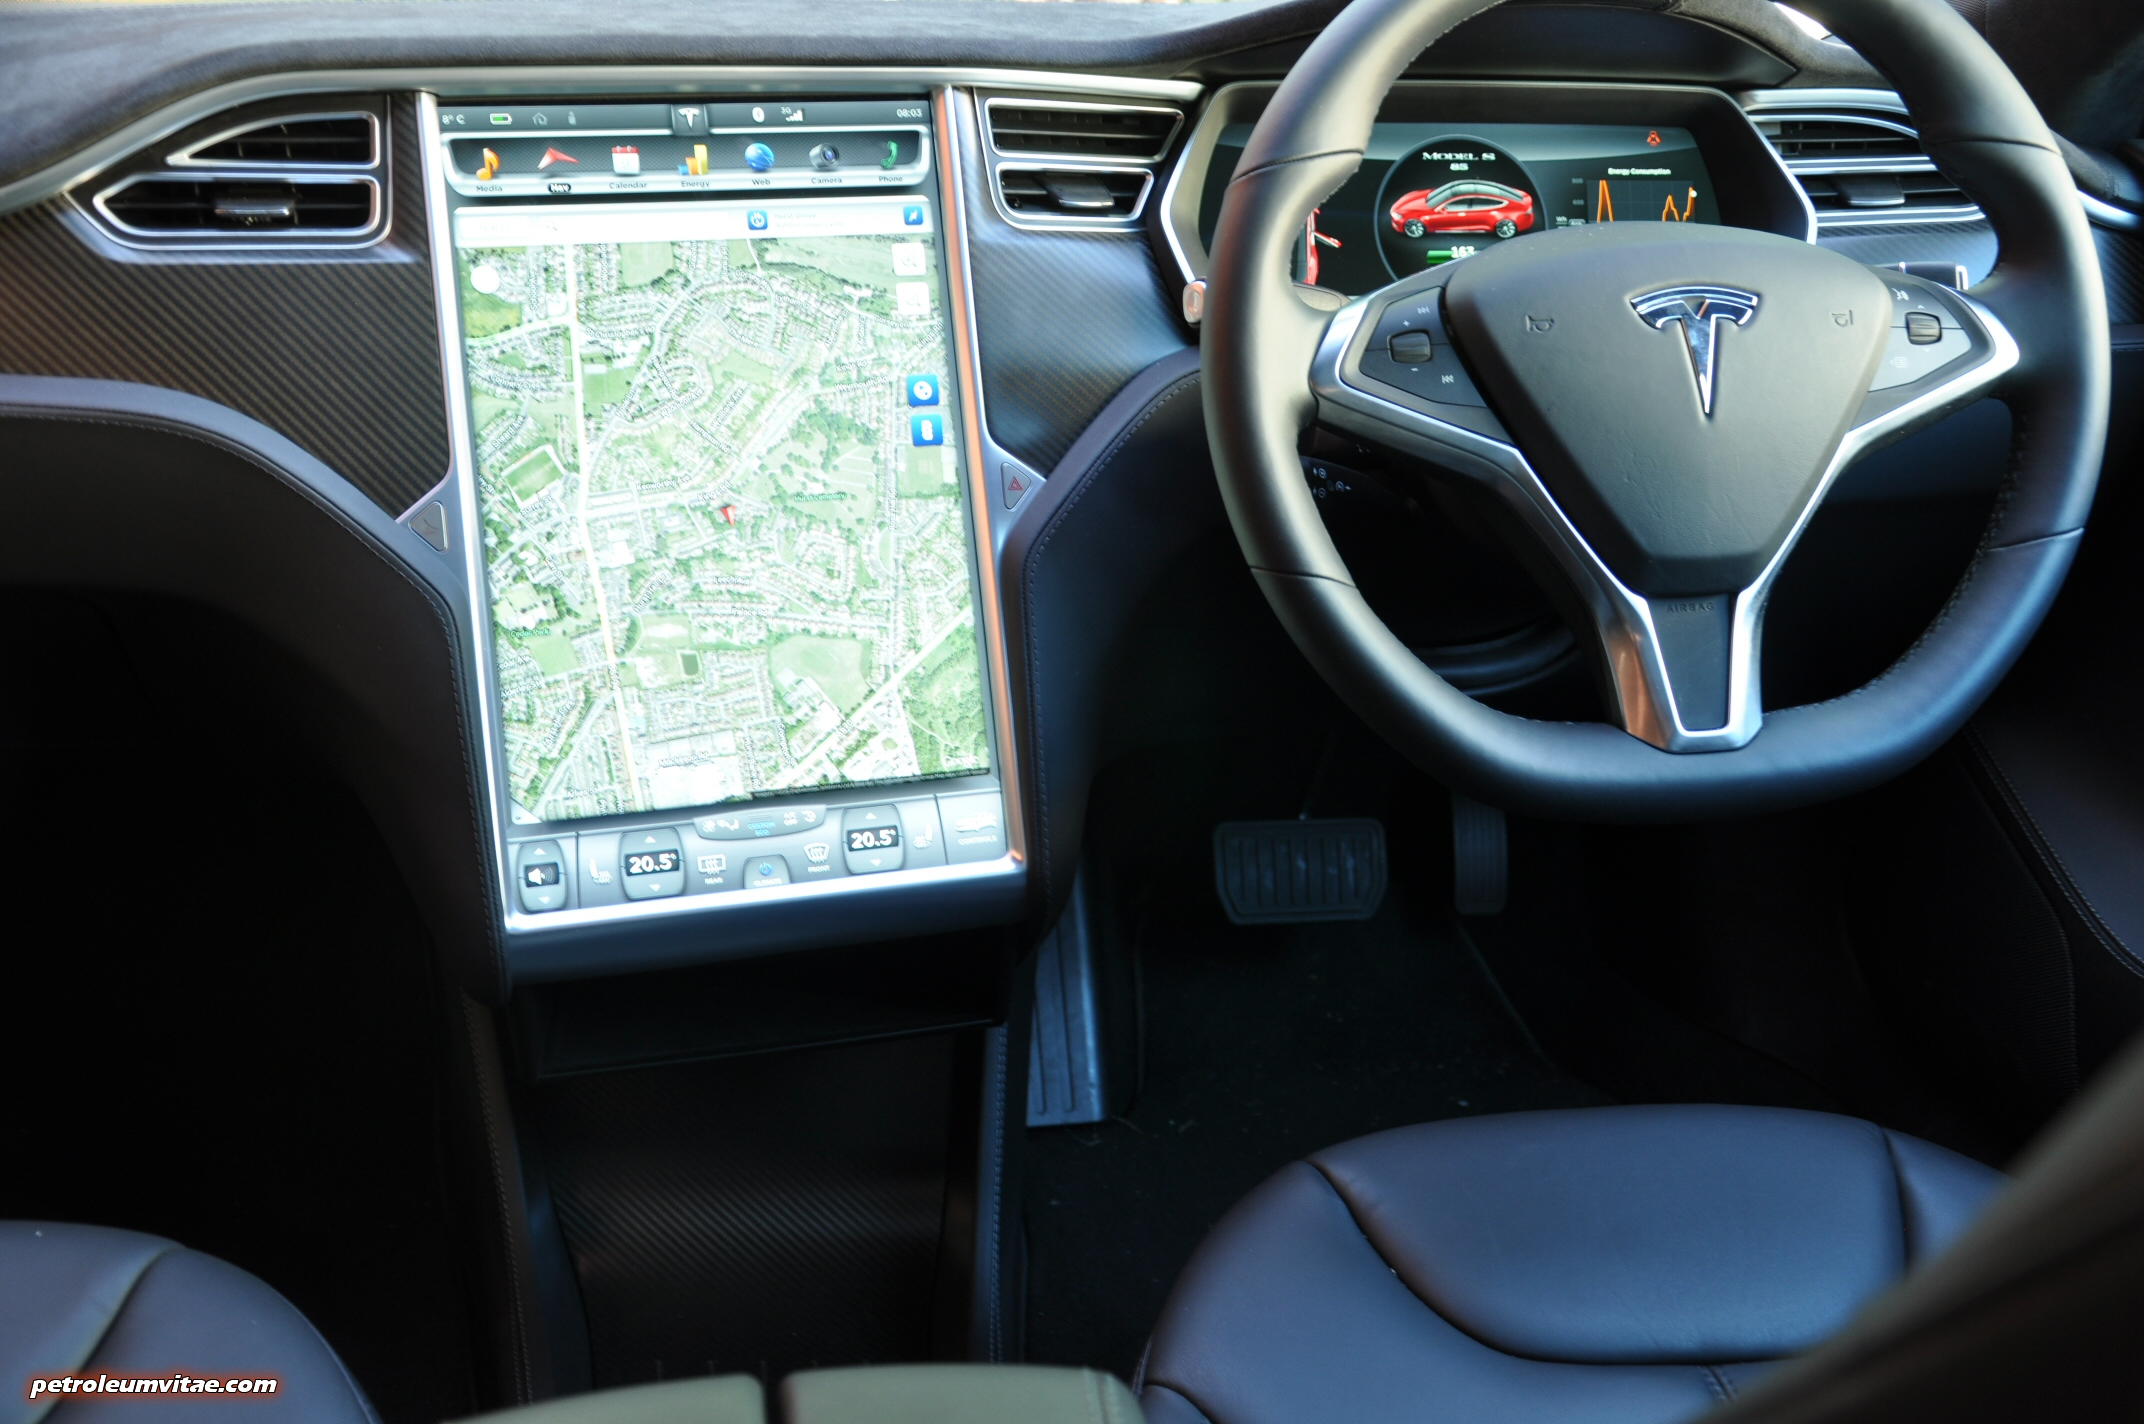 A supercharged week with Teslas Model S 85  Petroleum Vitae